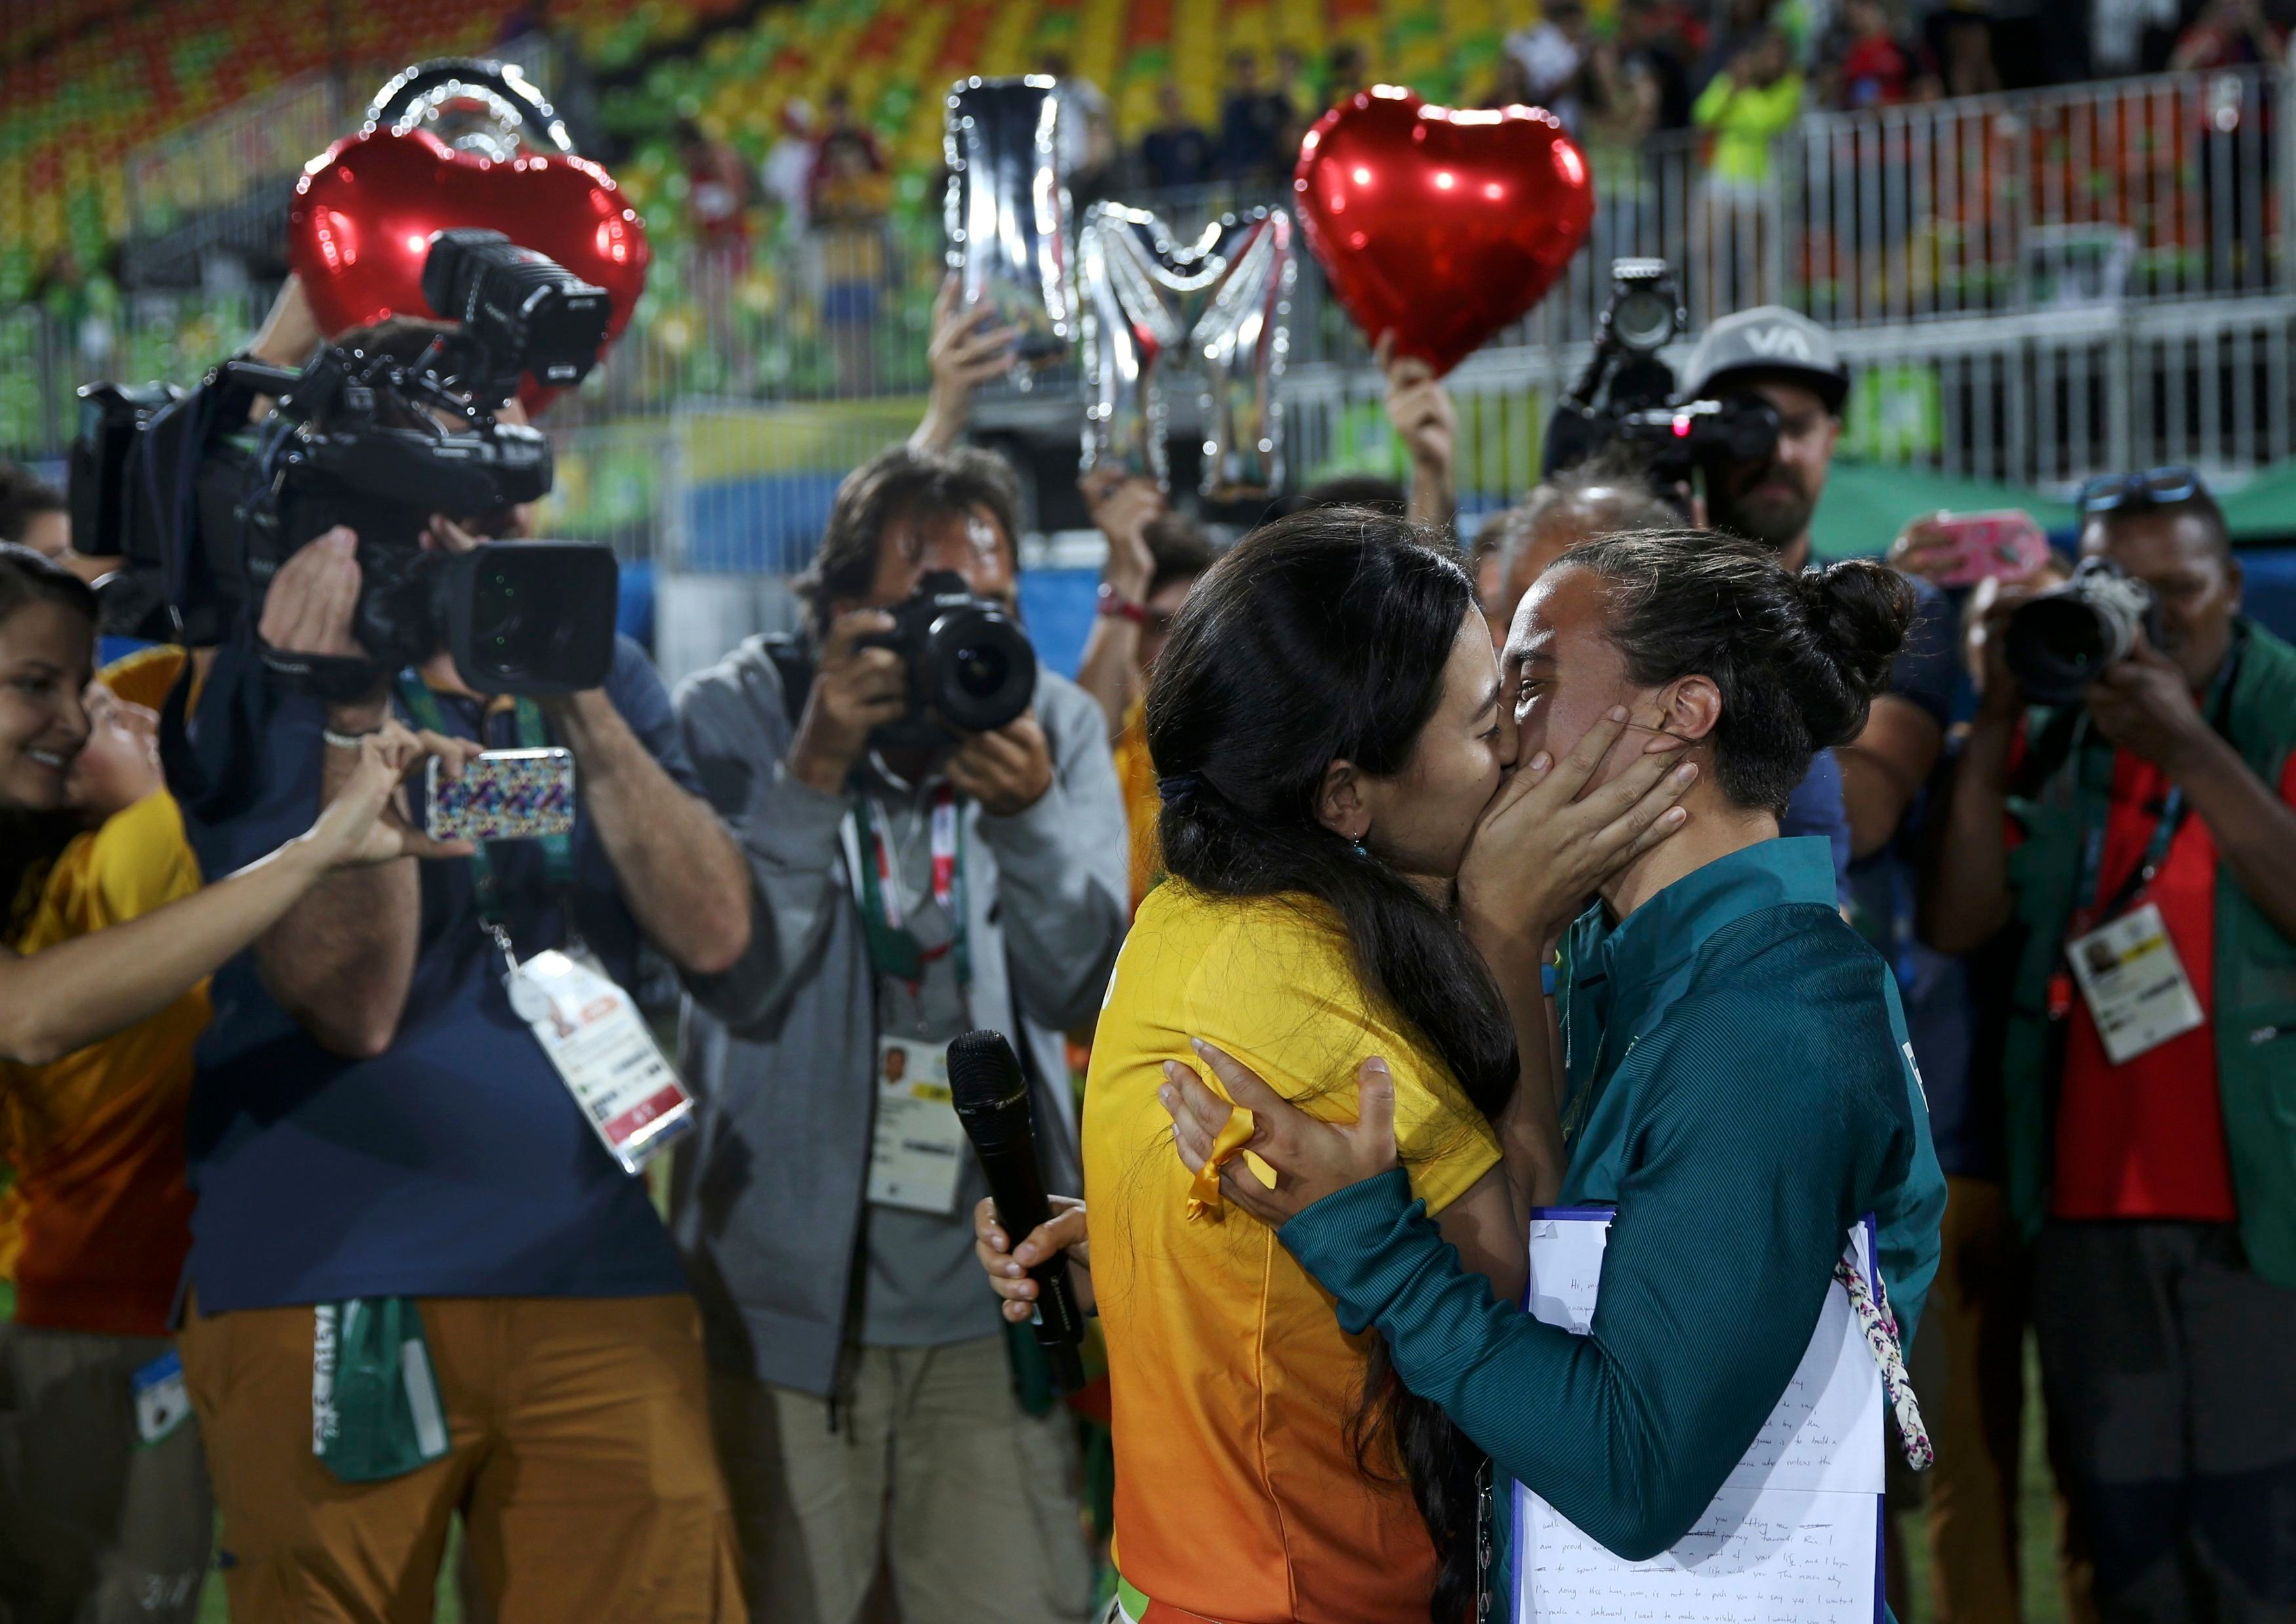 Brazilian Rugby Sevens Engagement At Rio 2016 Olympics Reminds Us All That Love